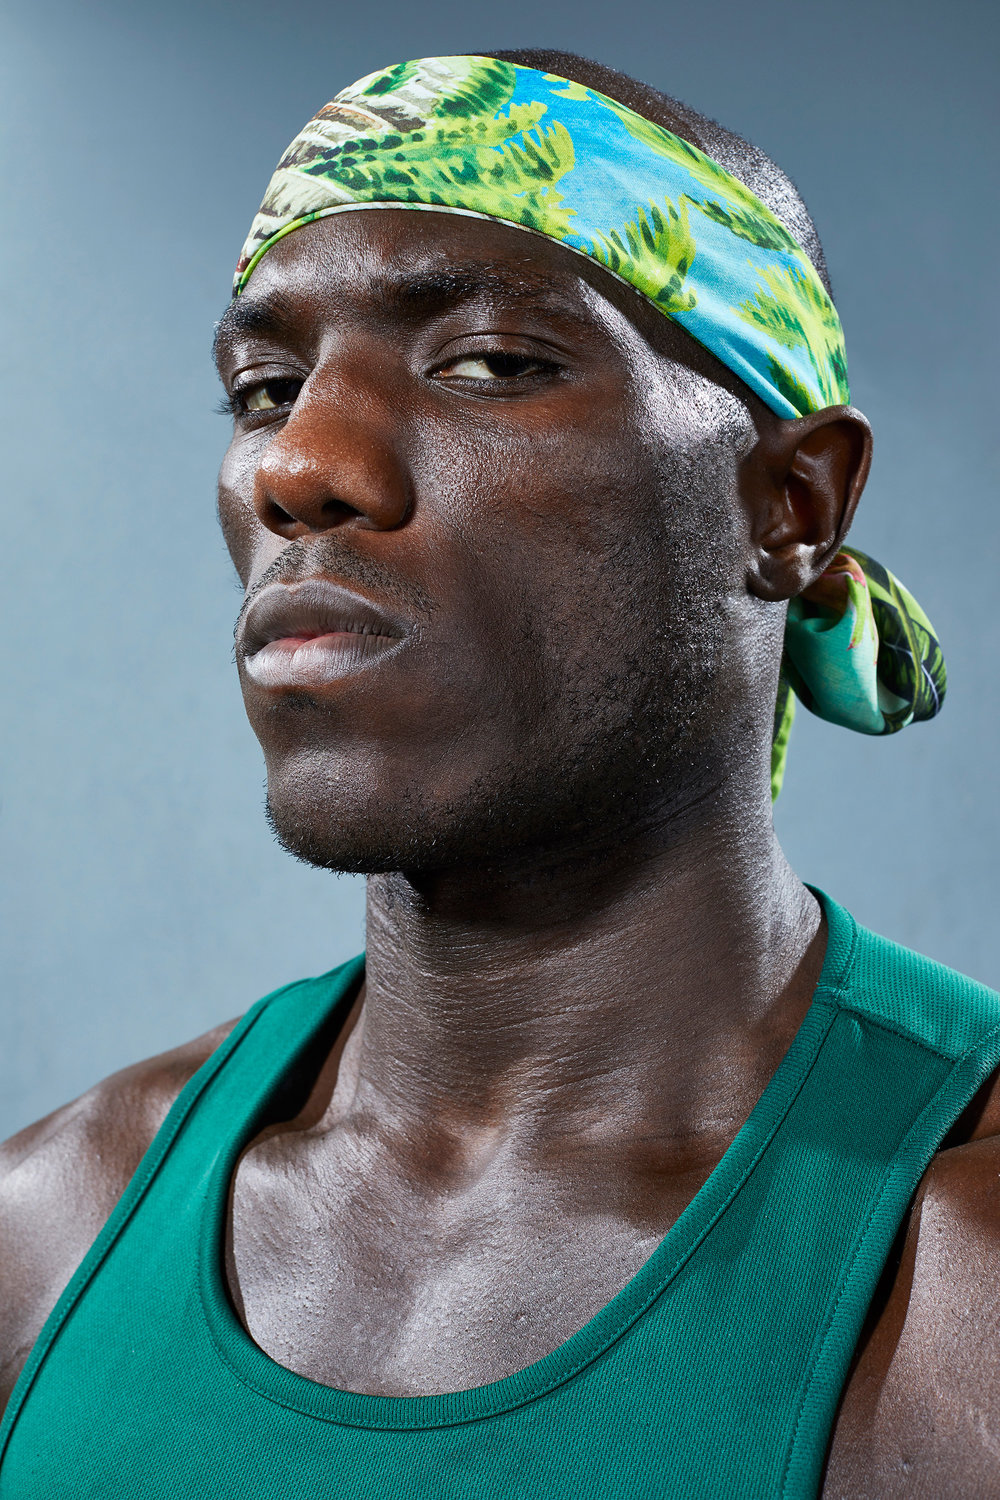 Sports & Fitness Photographer Stefano Head Shot